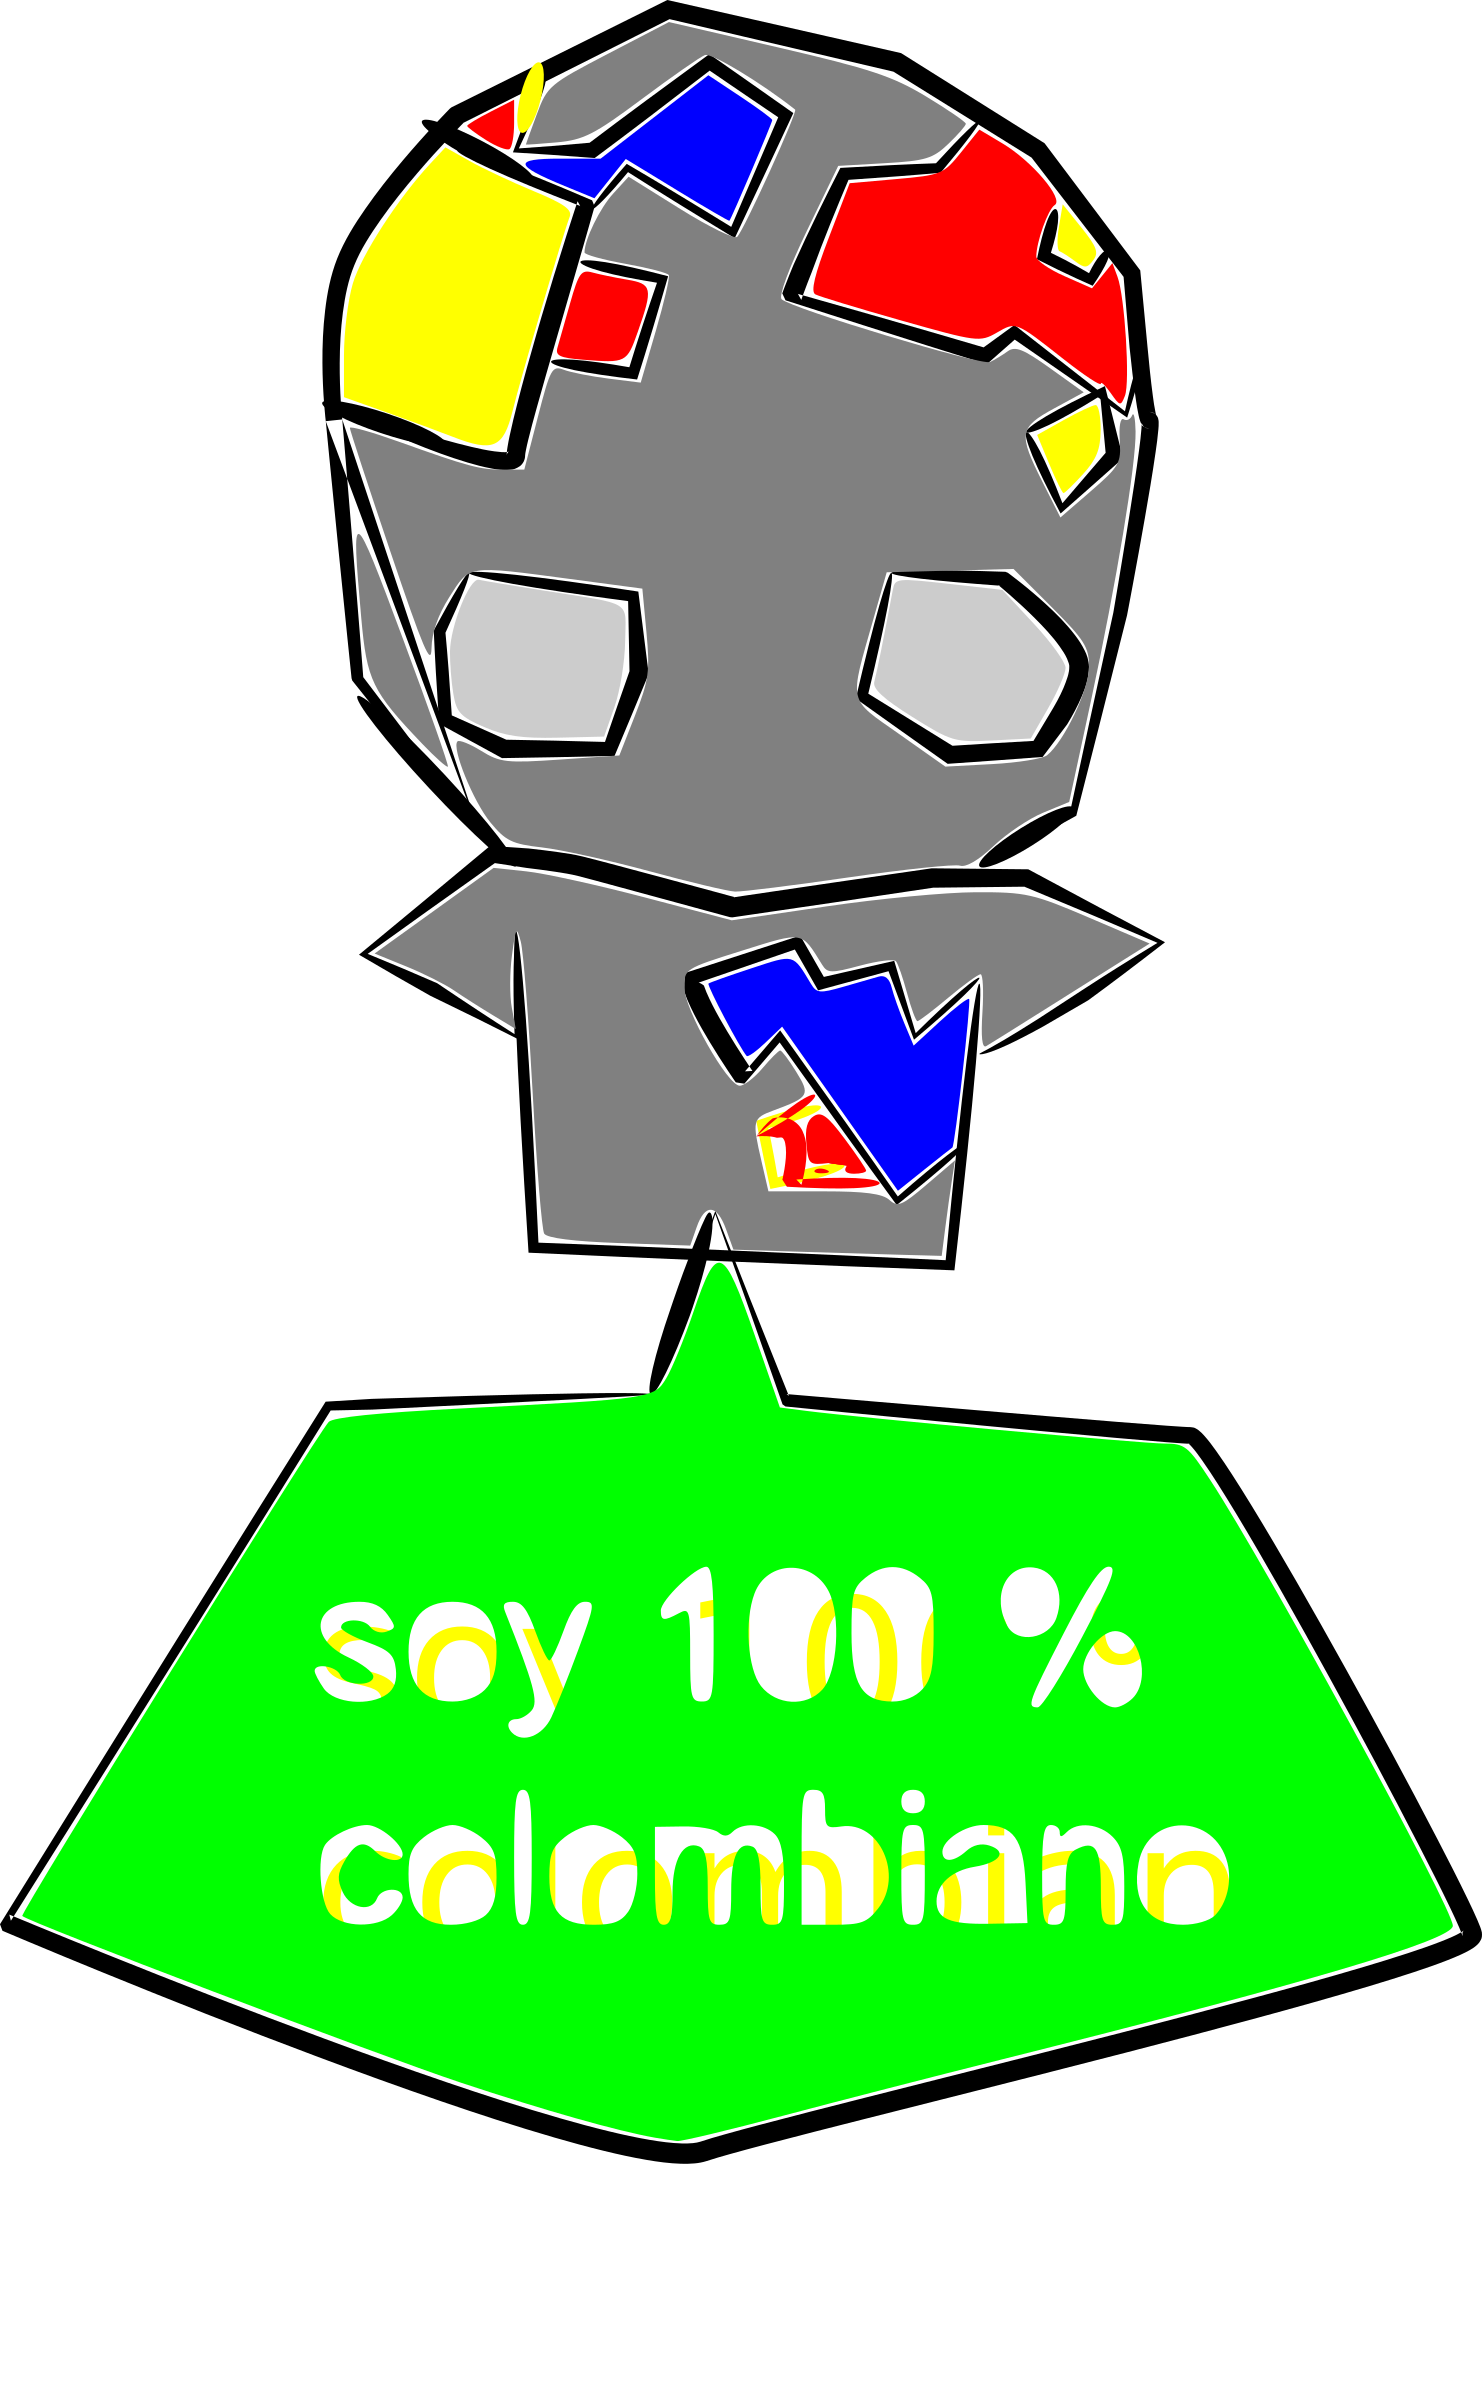 soy 100 % colombiano by crashgor8702